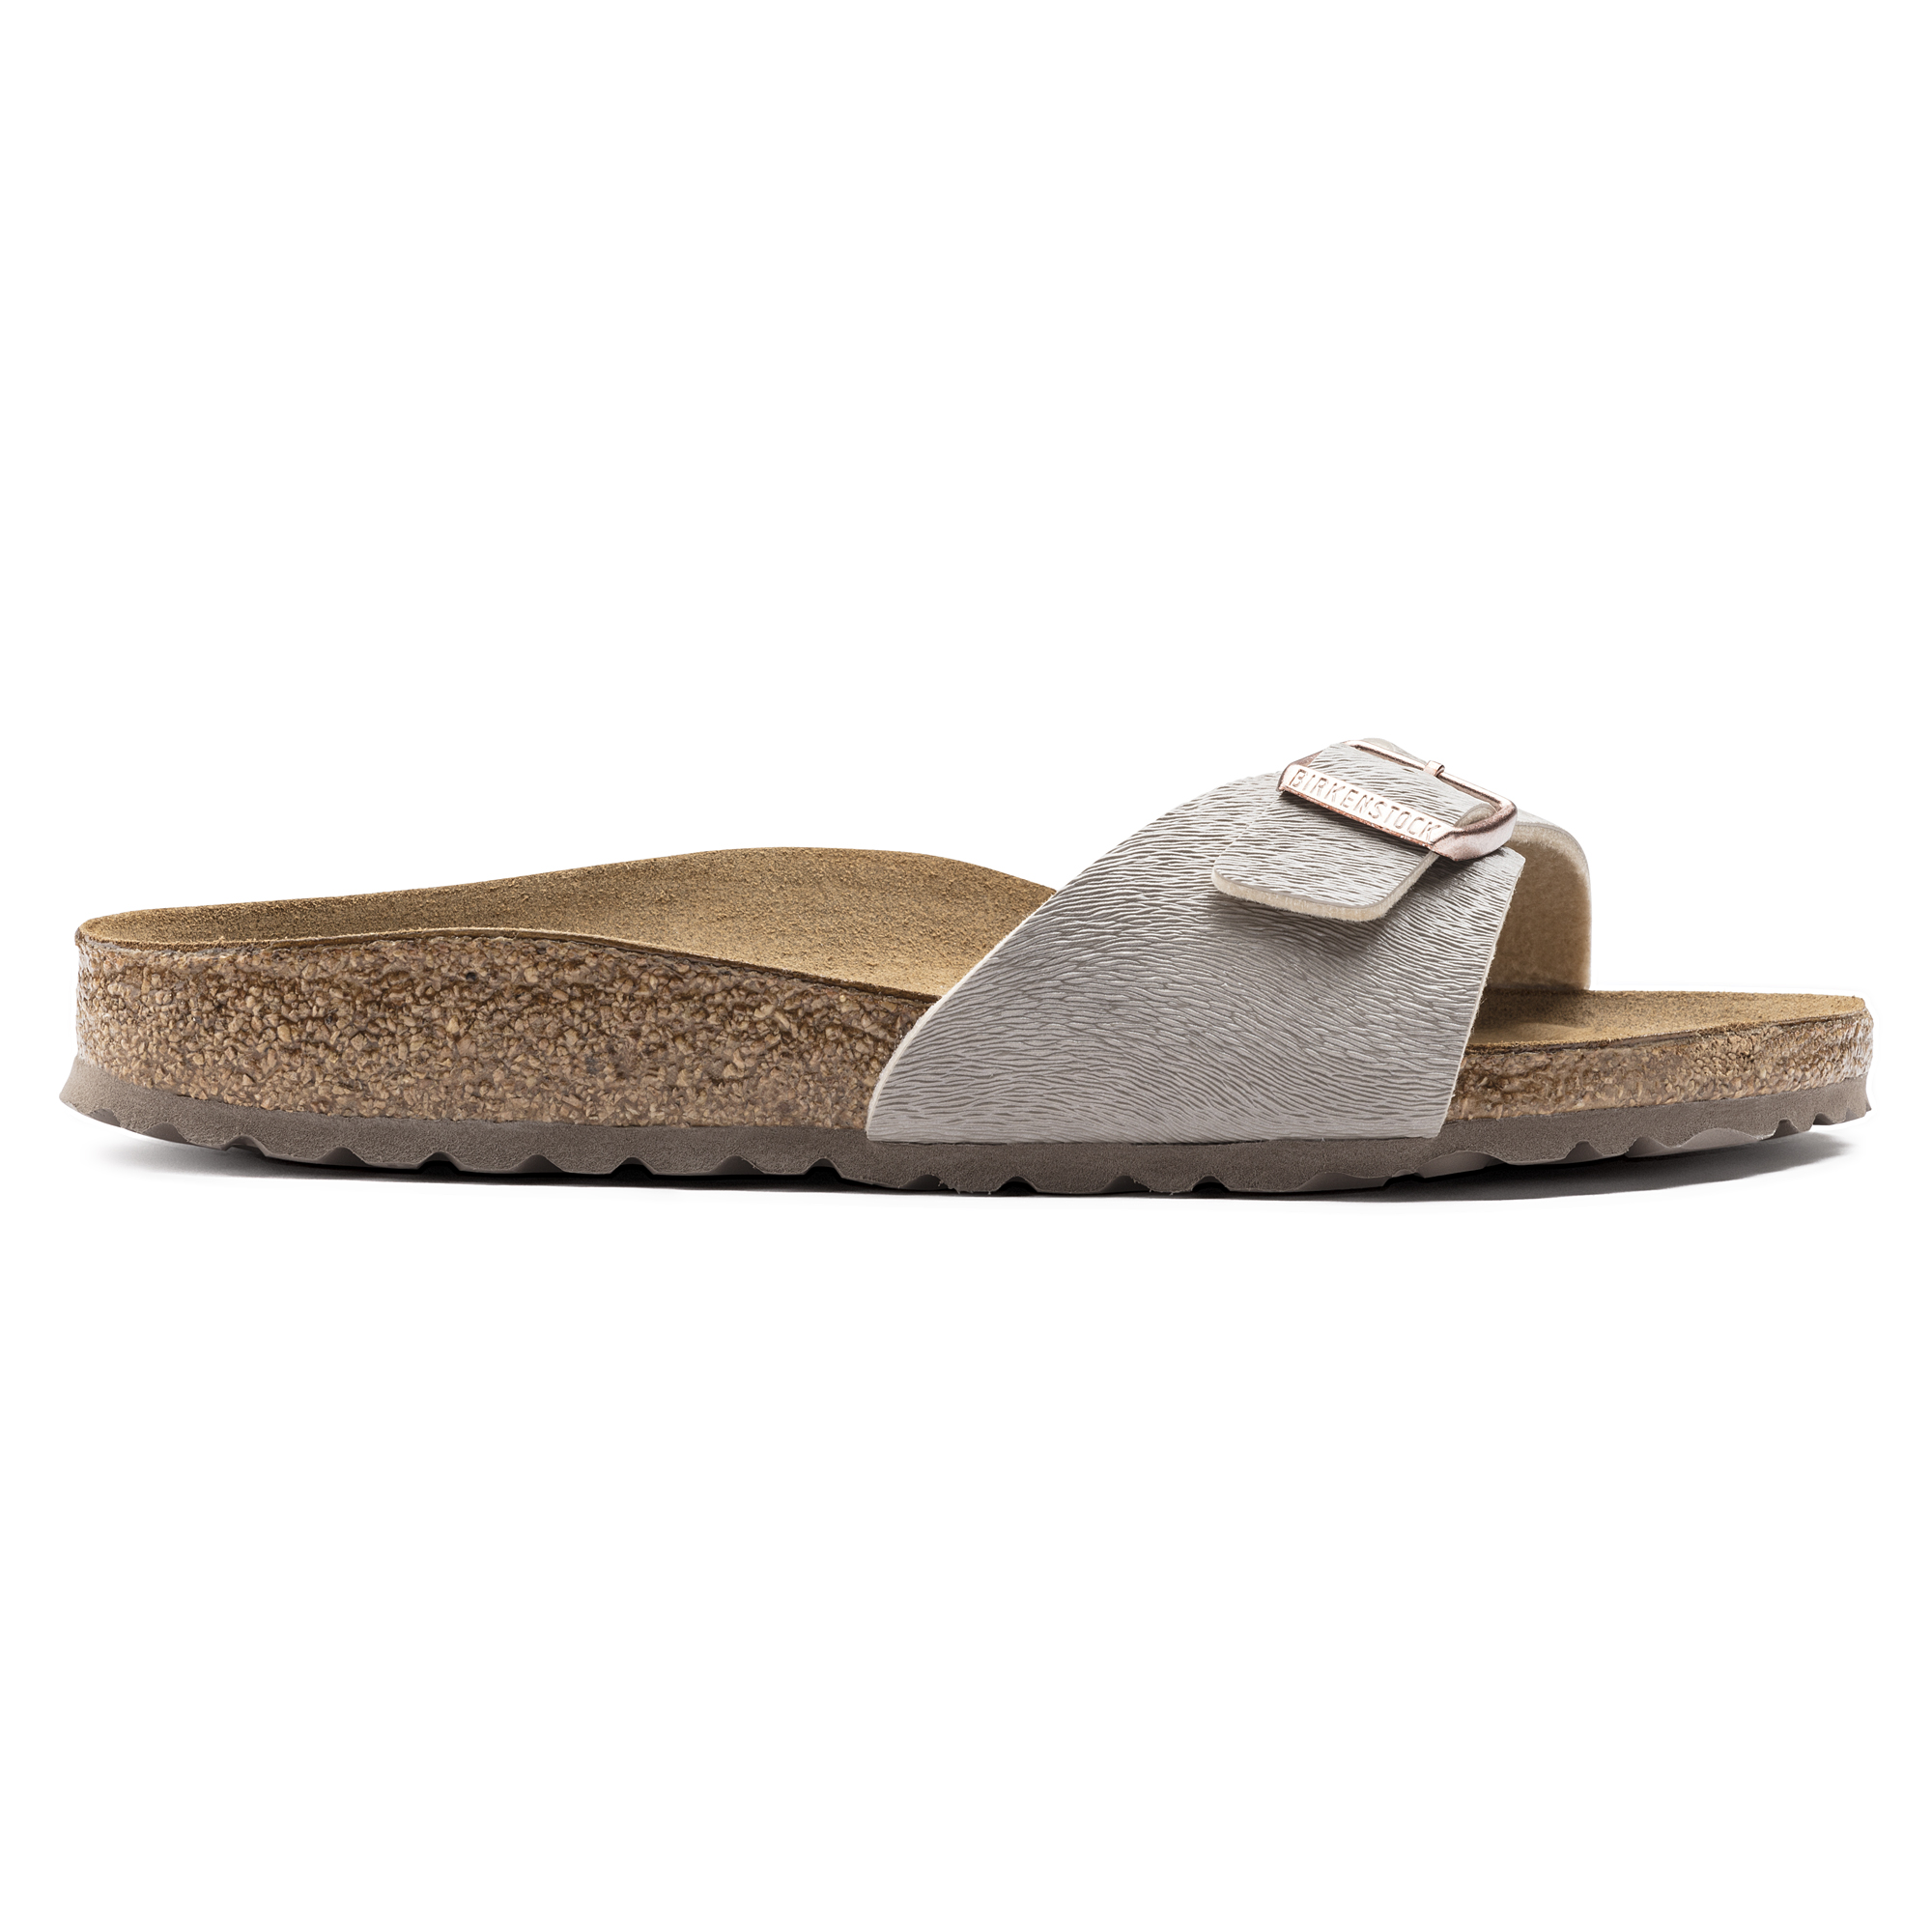 Madrid, Mules Femmes, Beige (Animal Fascination Mud), 35 EUBirkenstock